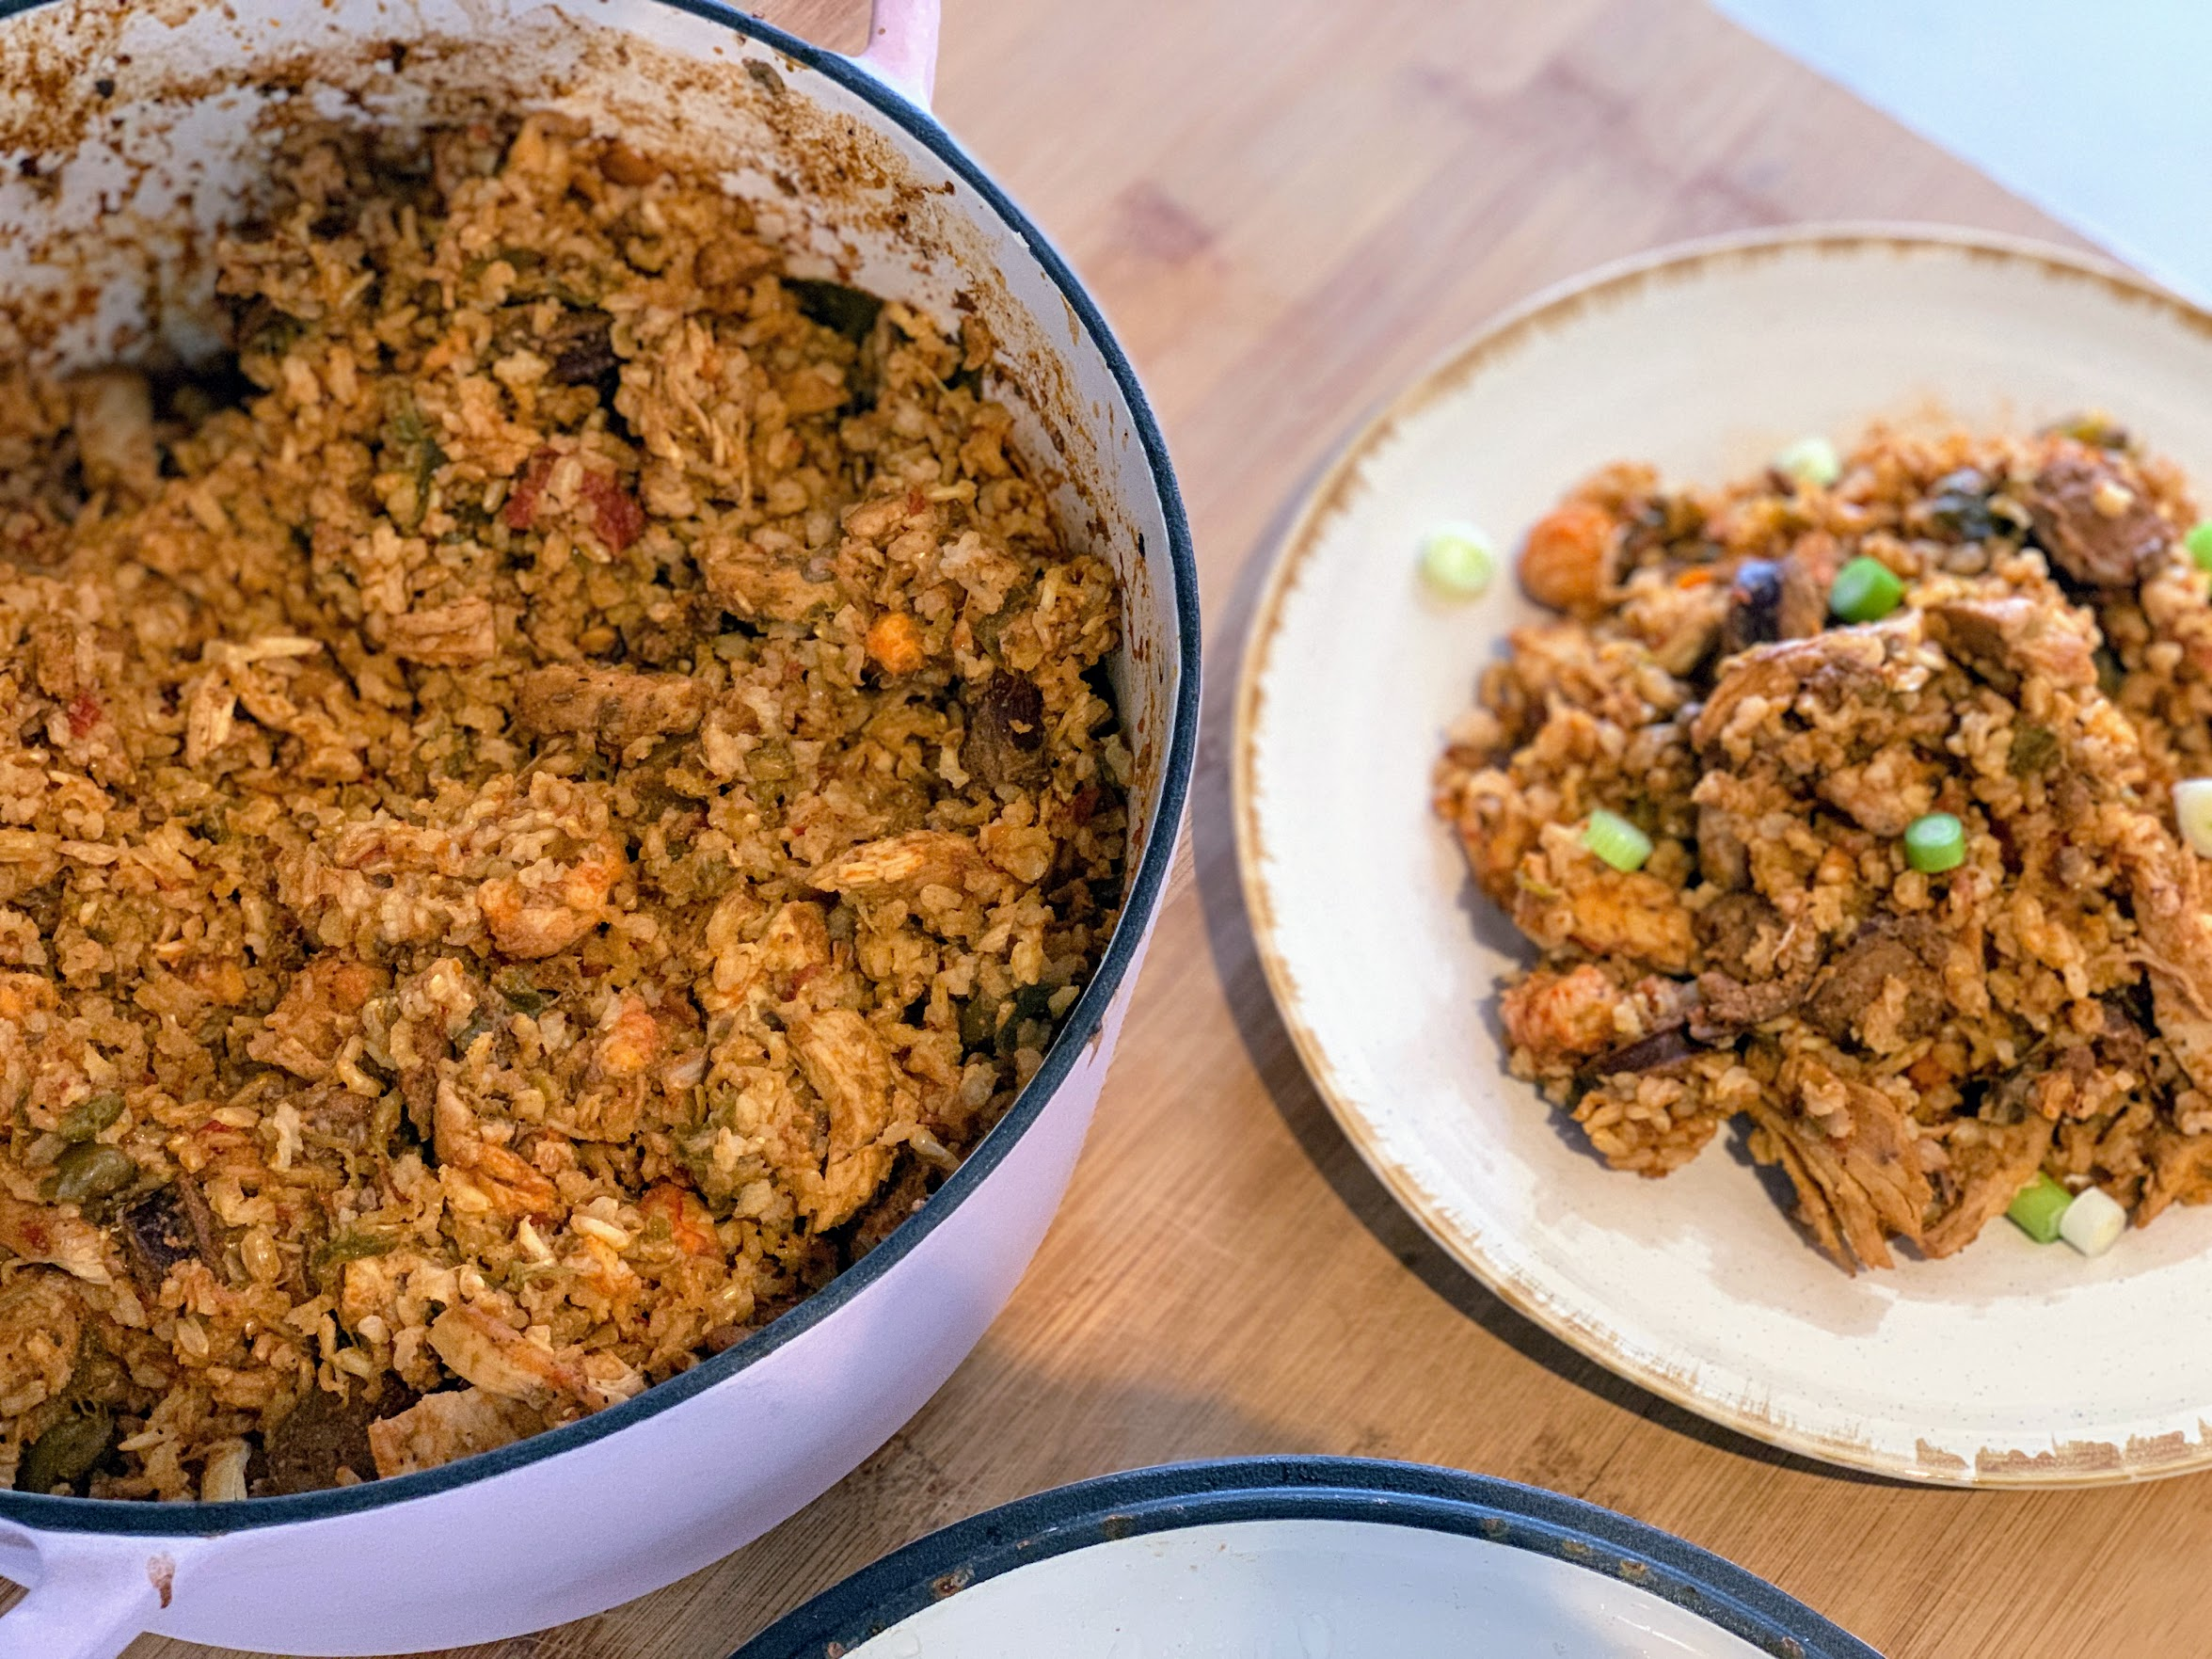 Summer jambalaya with okra, mirepoix, duck fat, ripe tomatoes, spices and 3 types of meat.